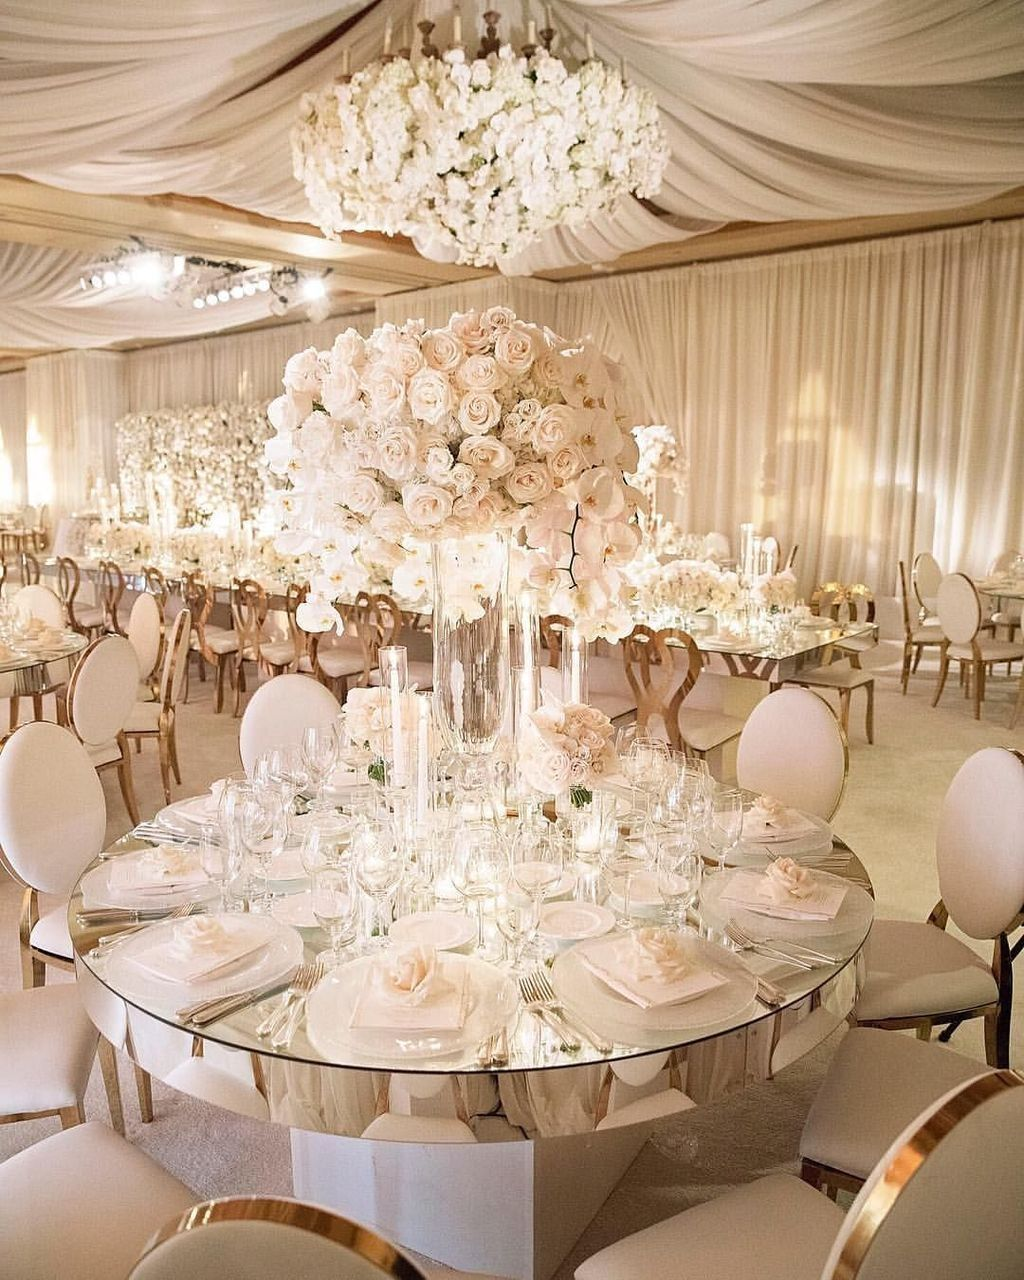 Elegant Wedding Reception Decoration: 30+ Totally Inspiring Wedding Hall Decoration Ideas